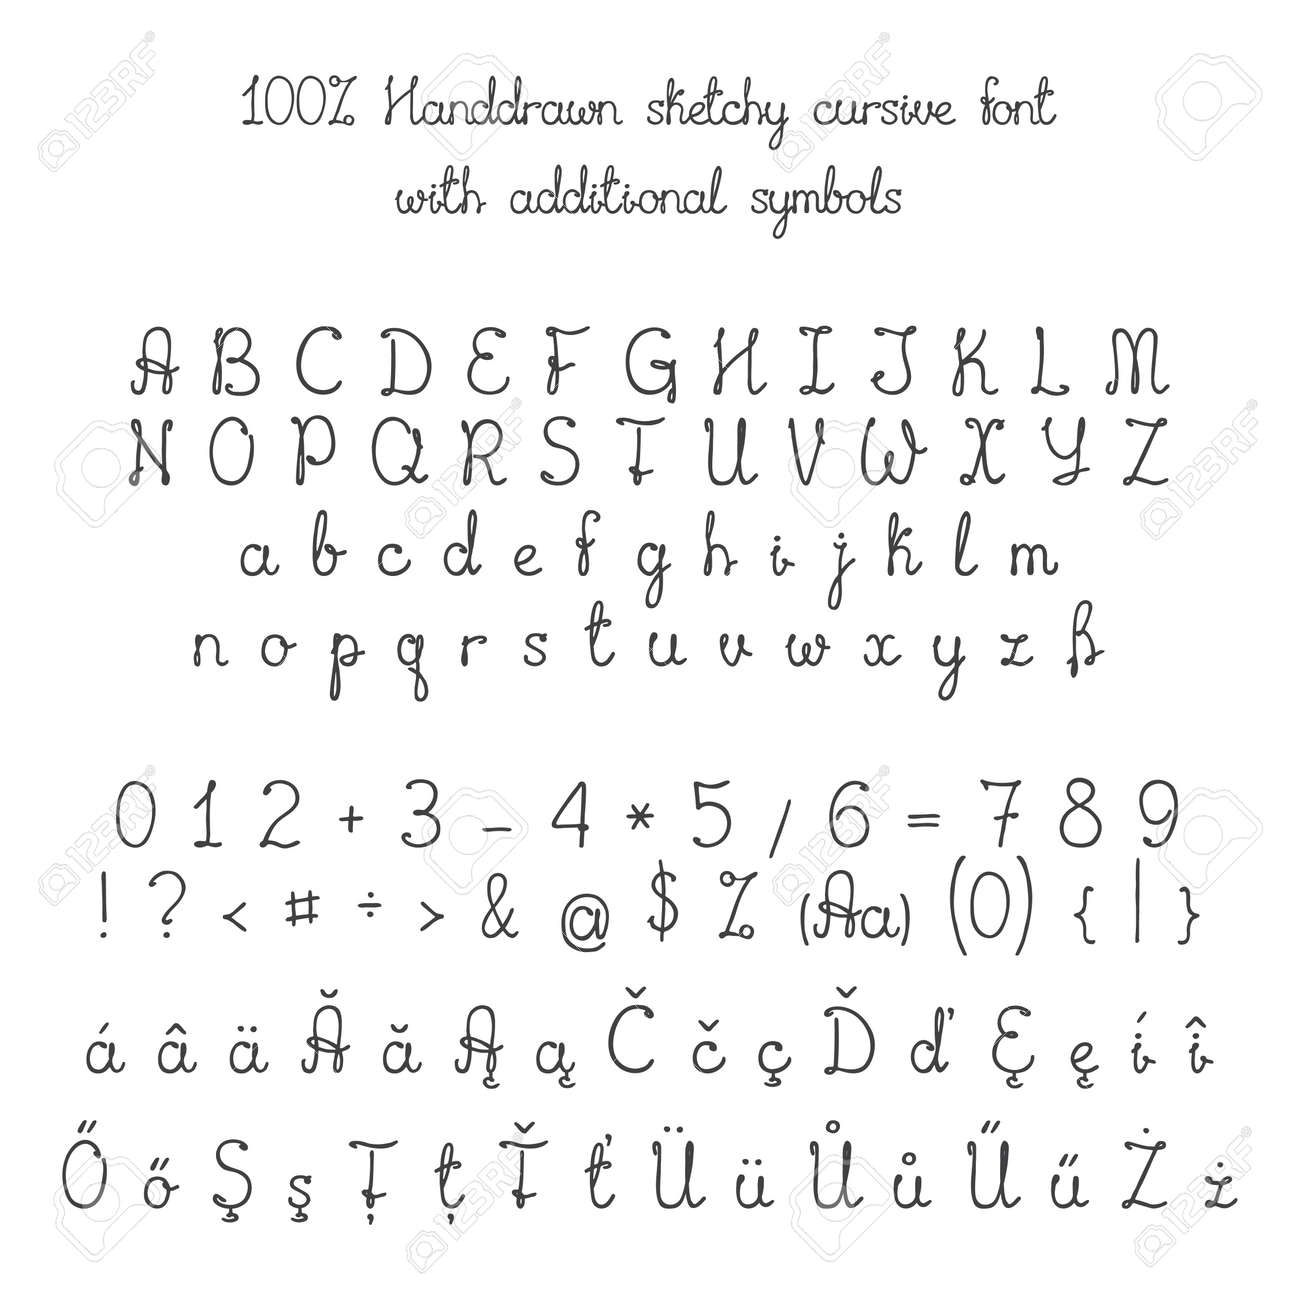 Vector Sketchy Handdrawn Italic Cursive Font With Additional